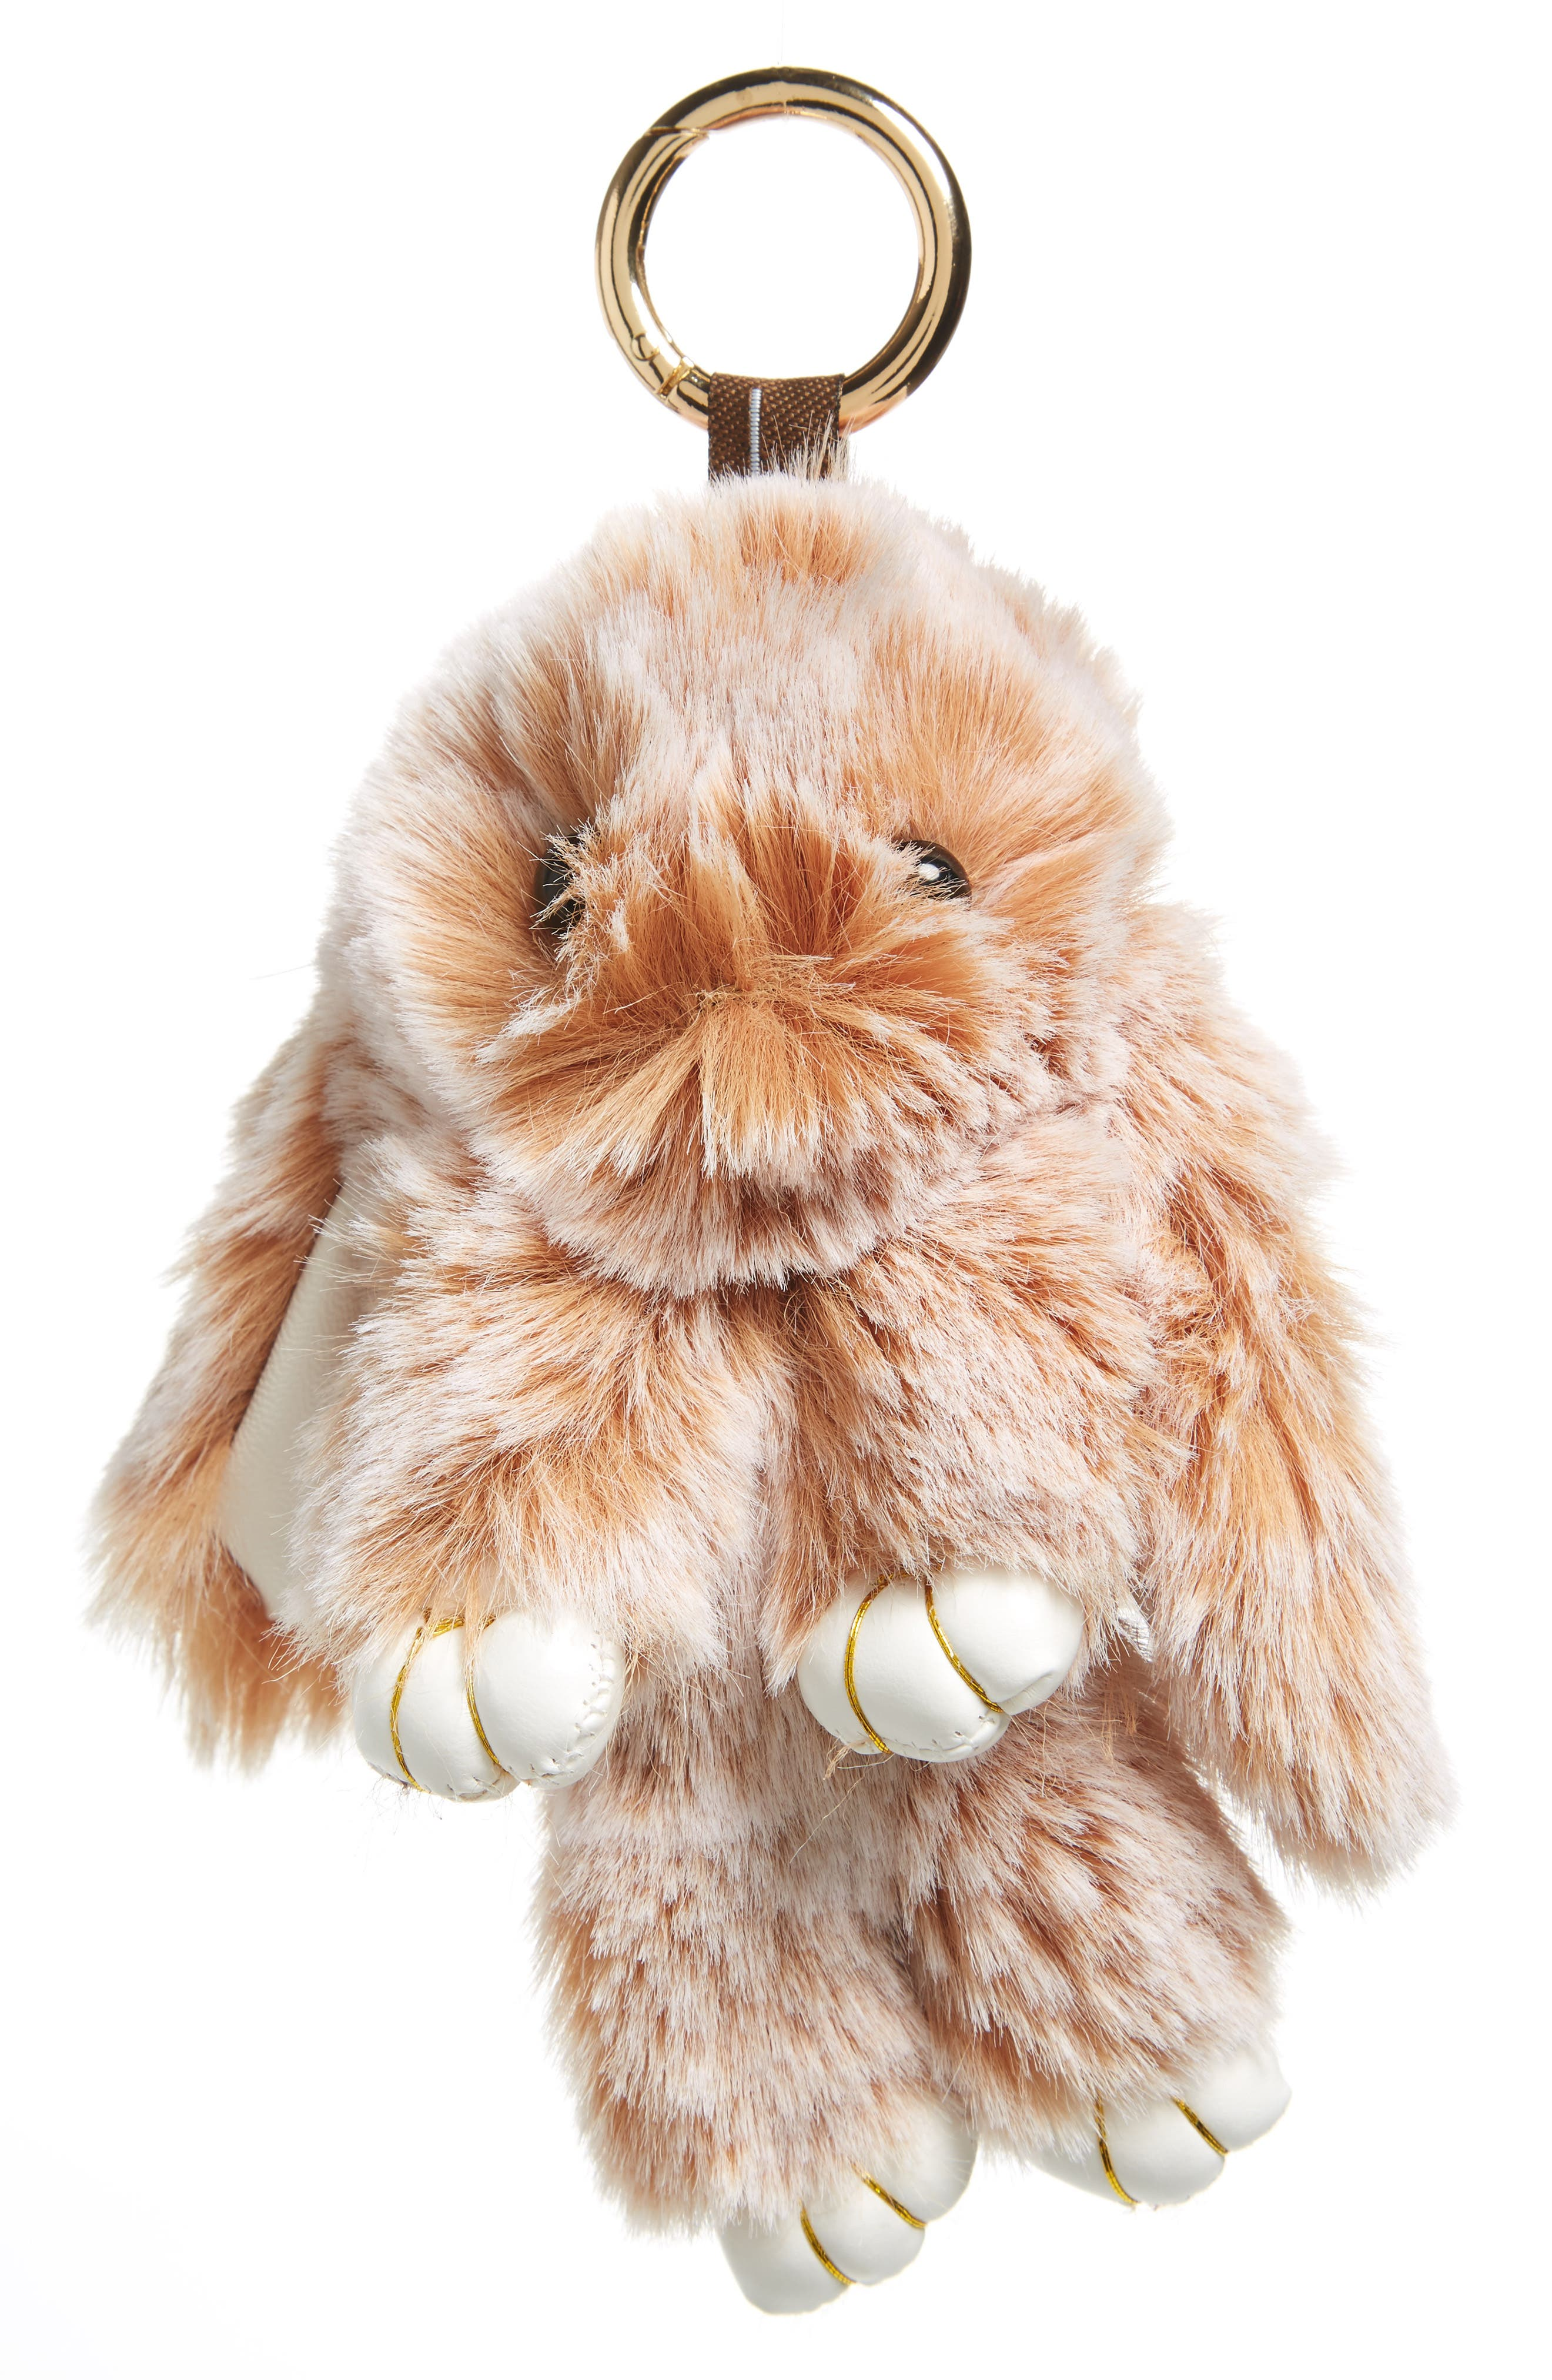 Cara Faux Fur Bunny Rabbit Key Chain